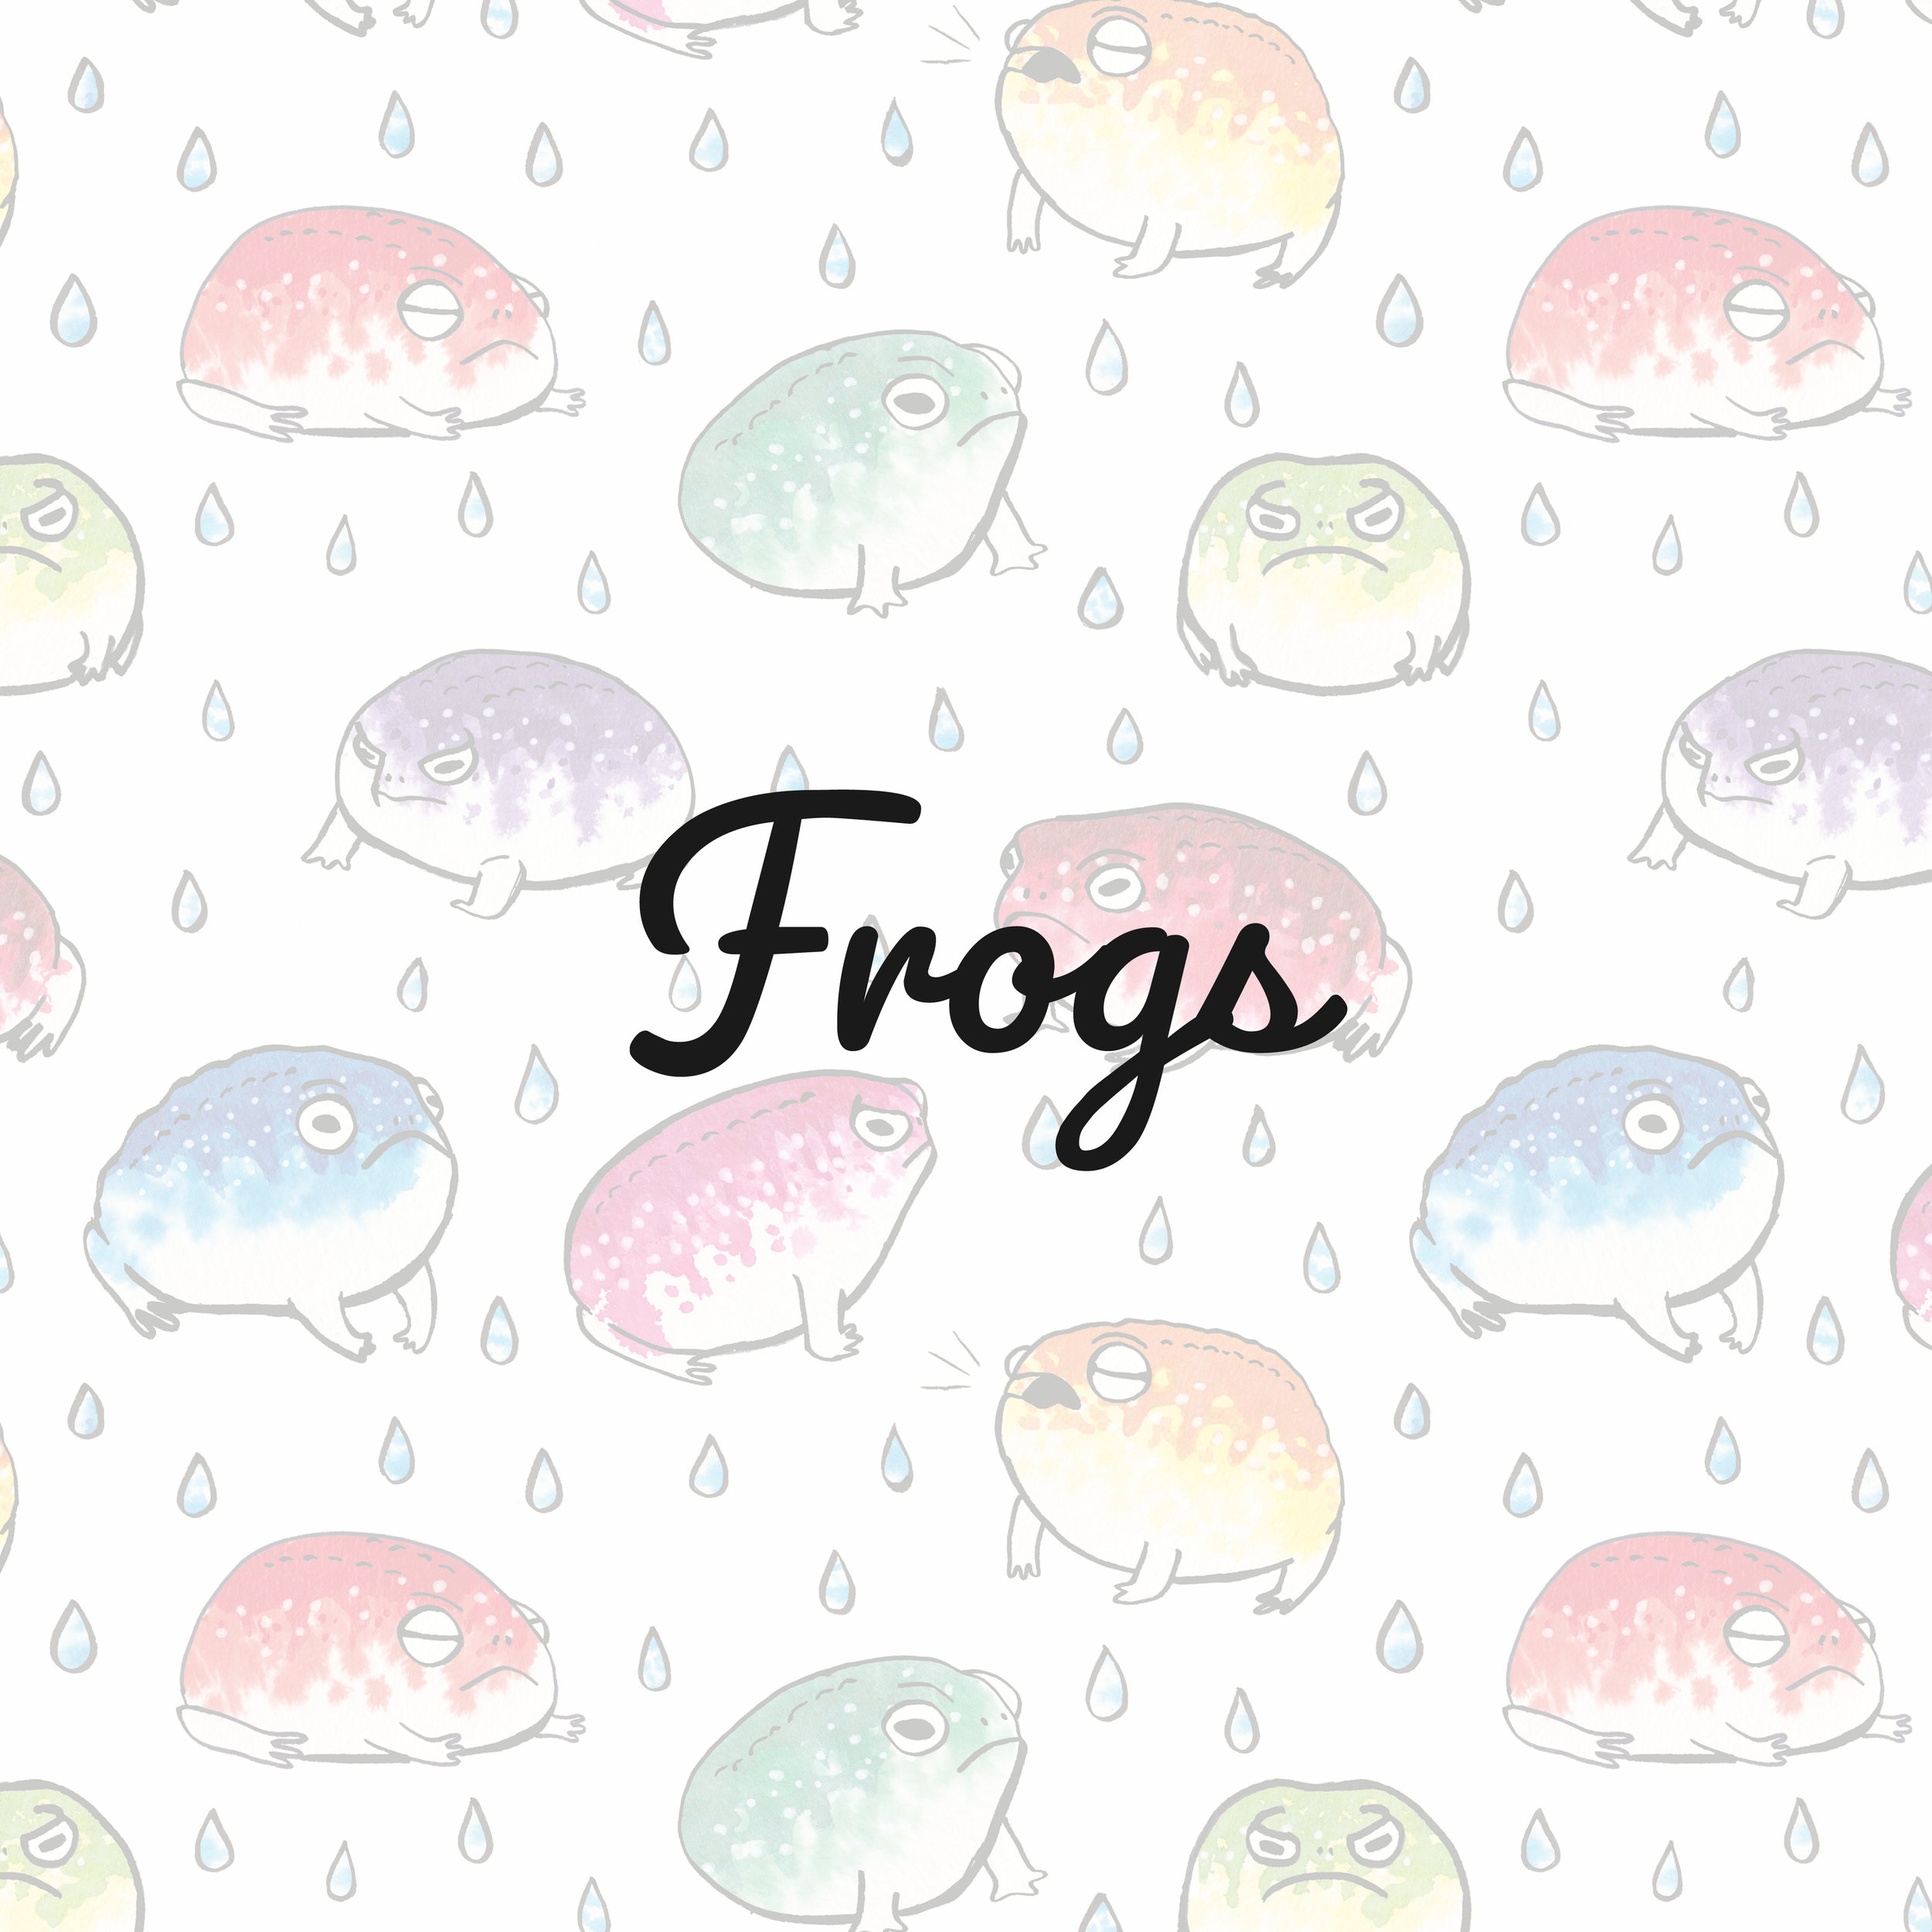 Frogs_square.jpg